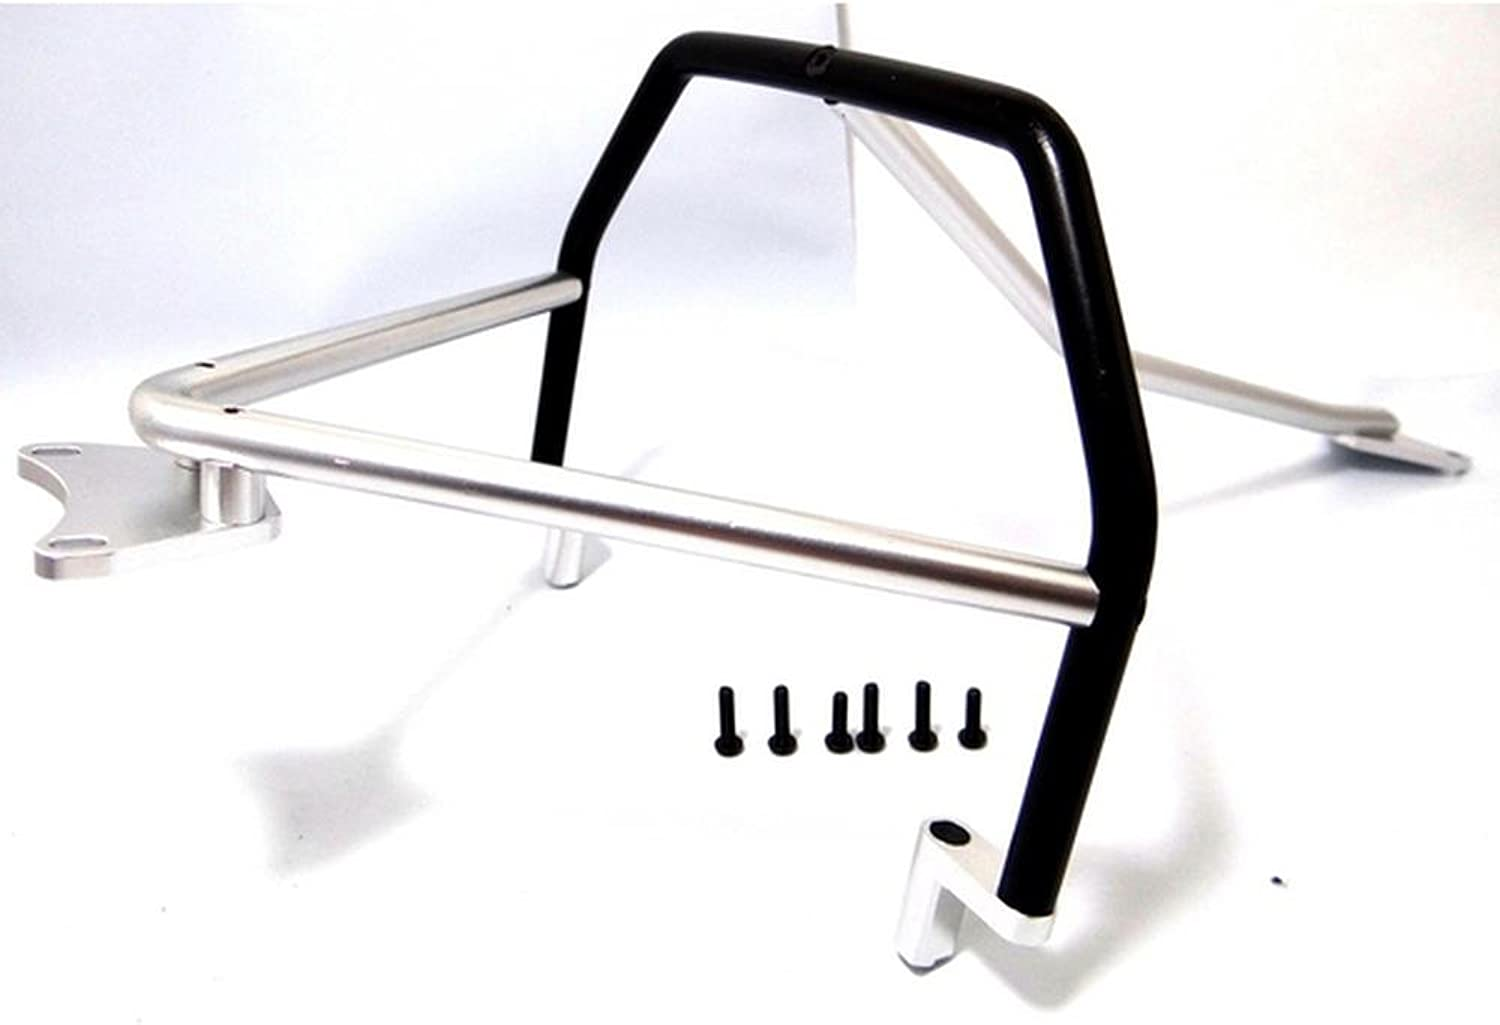 Hot Racing LCF11208 Aluminum Inner Roll Cage for Traxxas 1 10 Rally or LCG Slash 4x4